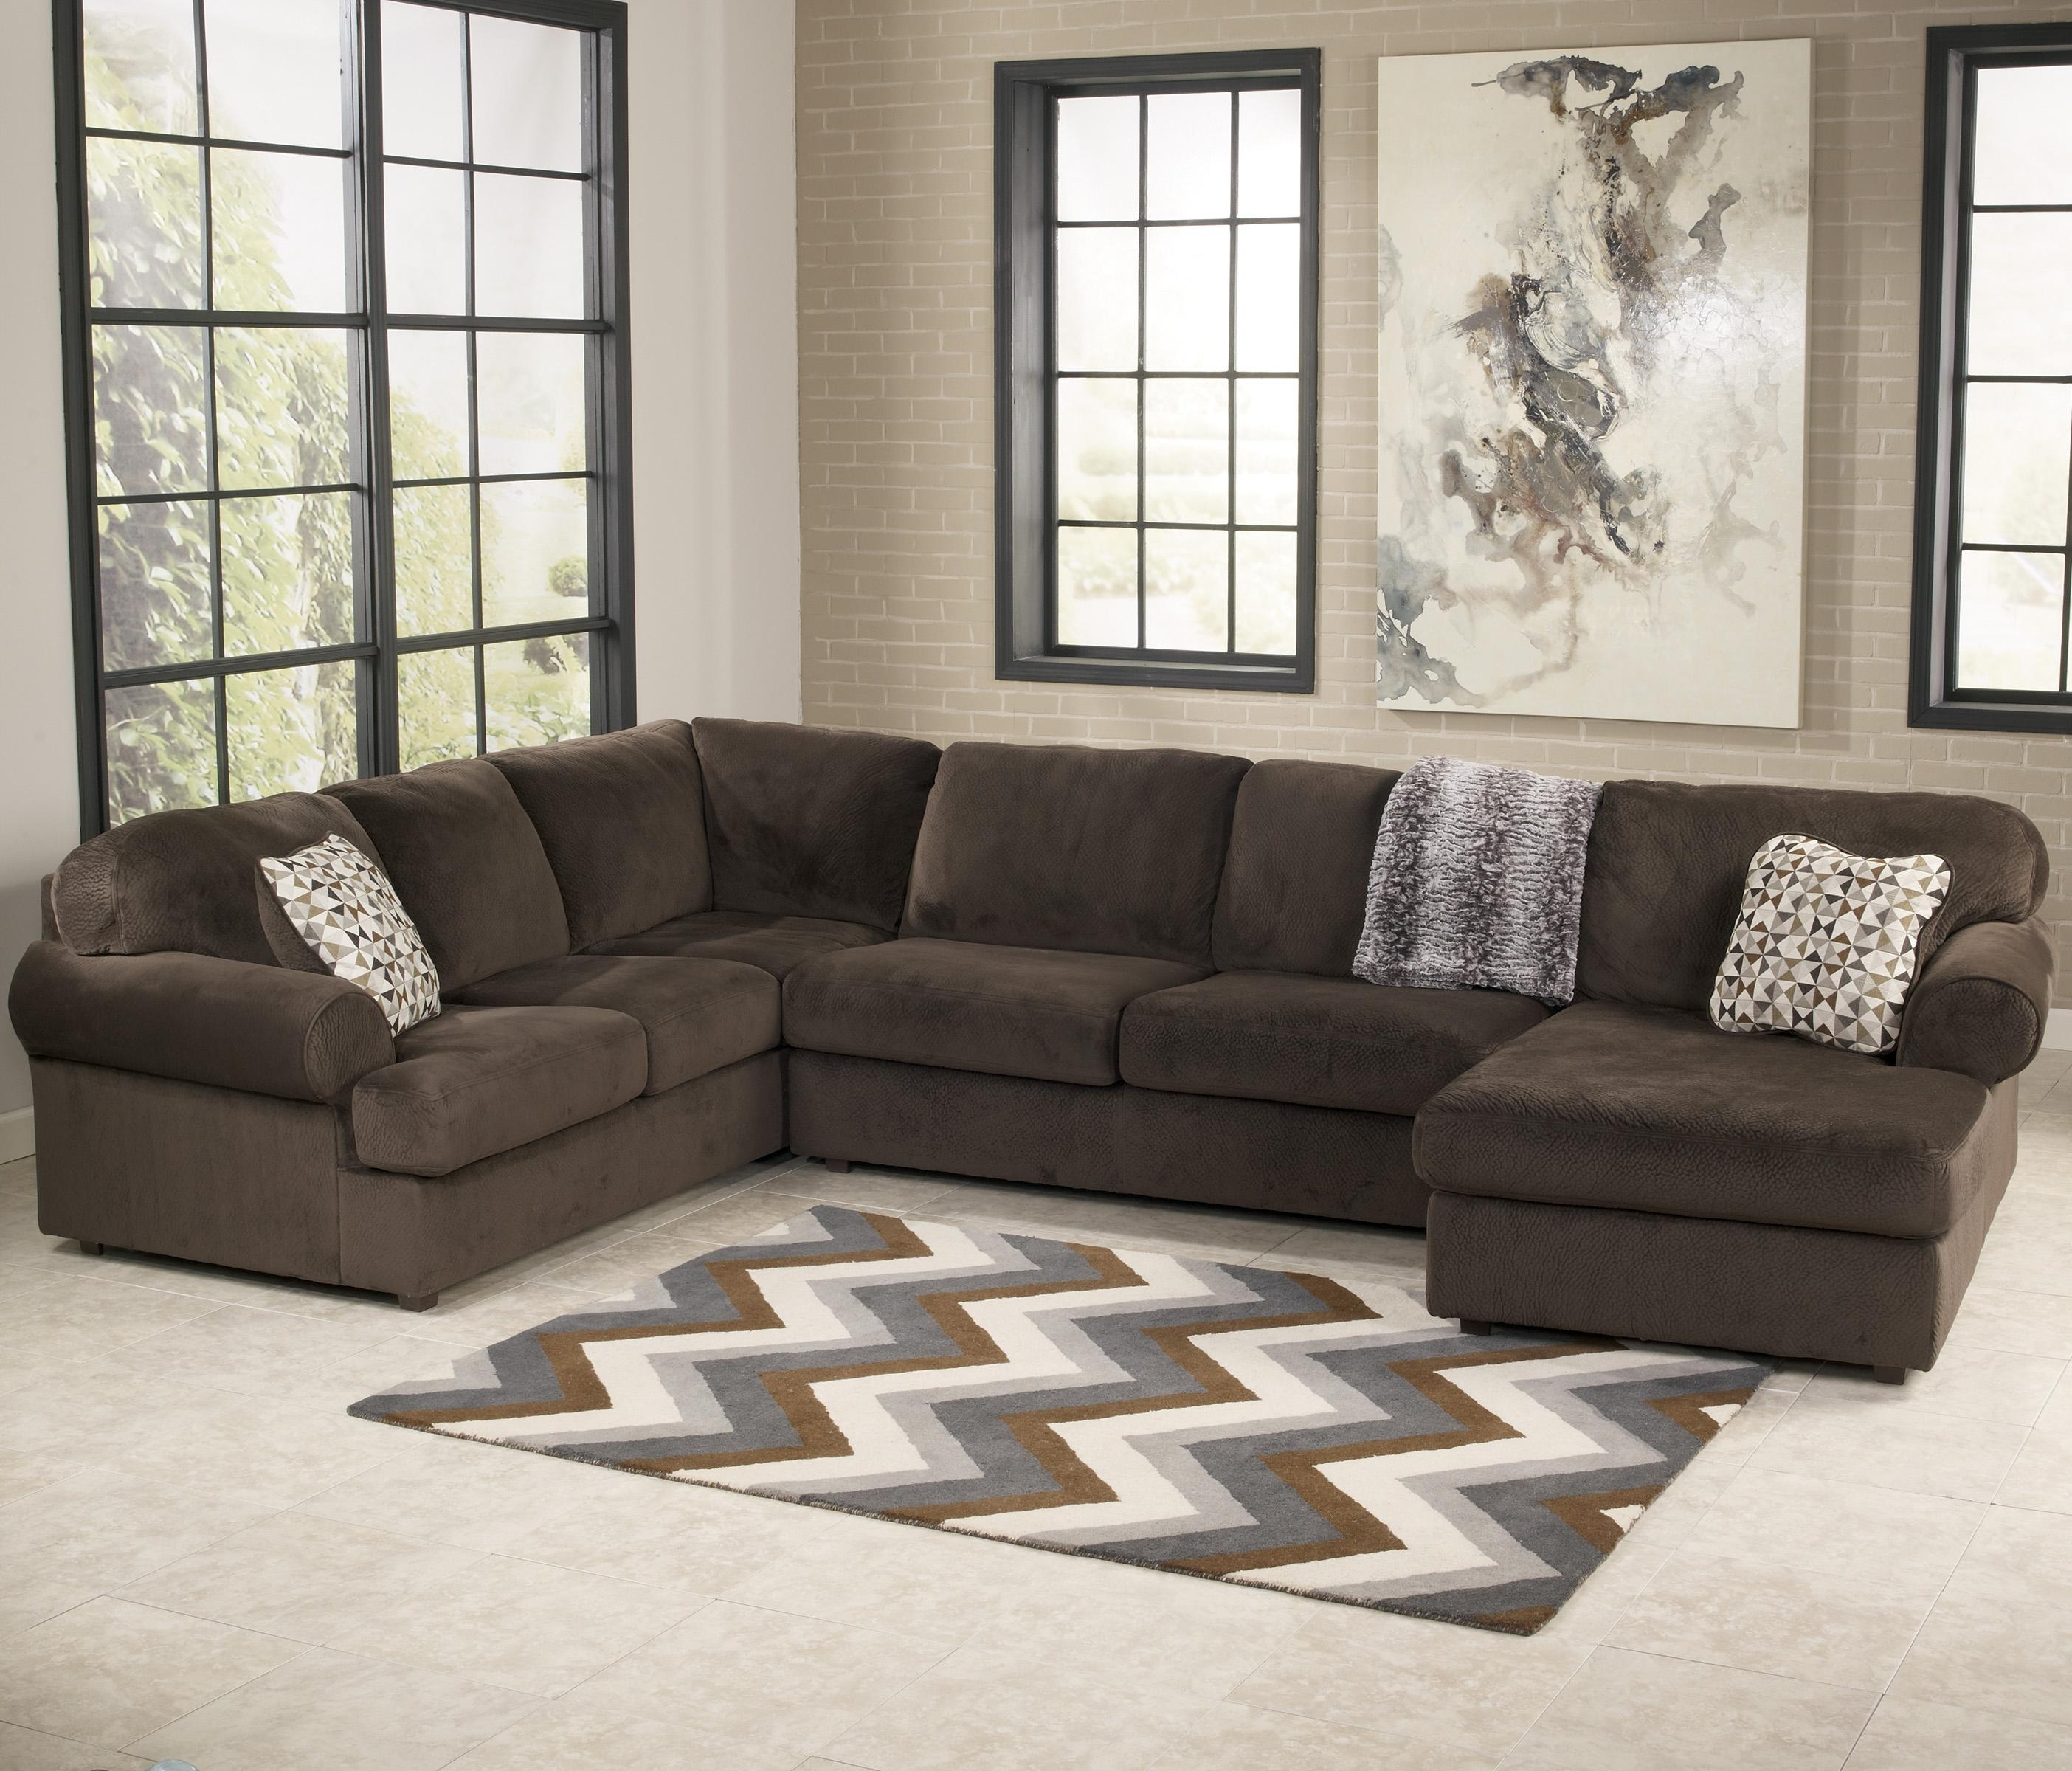 Signature Designashley Jessa Place – Chocolate Casual In 2018 Chocolate Sectional Sofas (View 13 of 15)